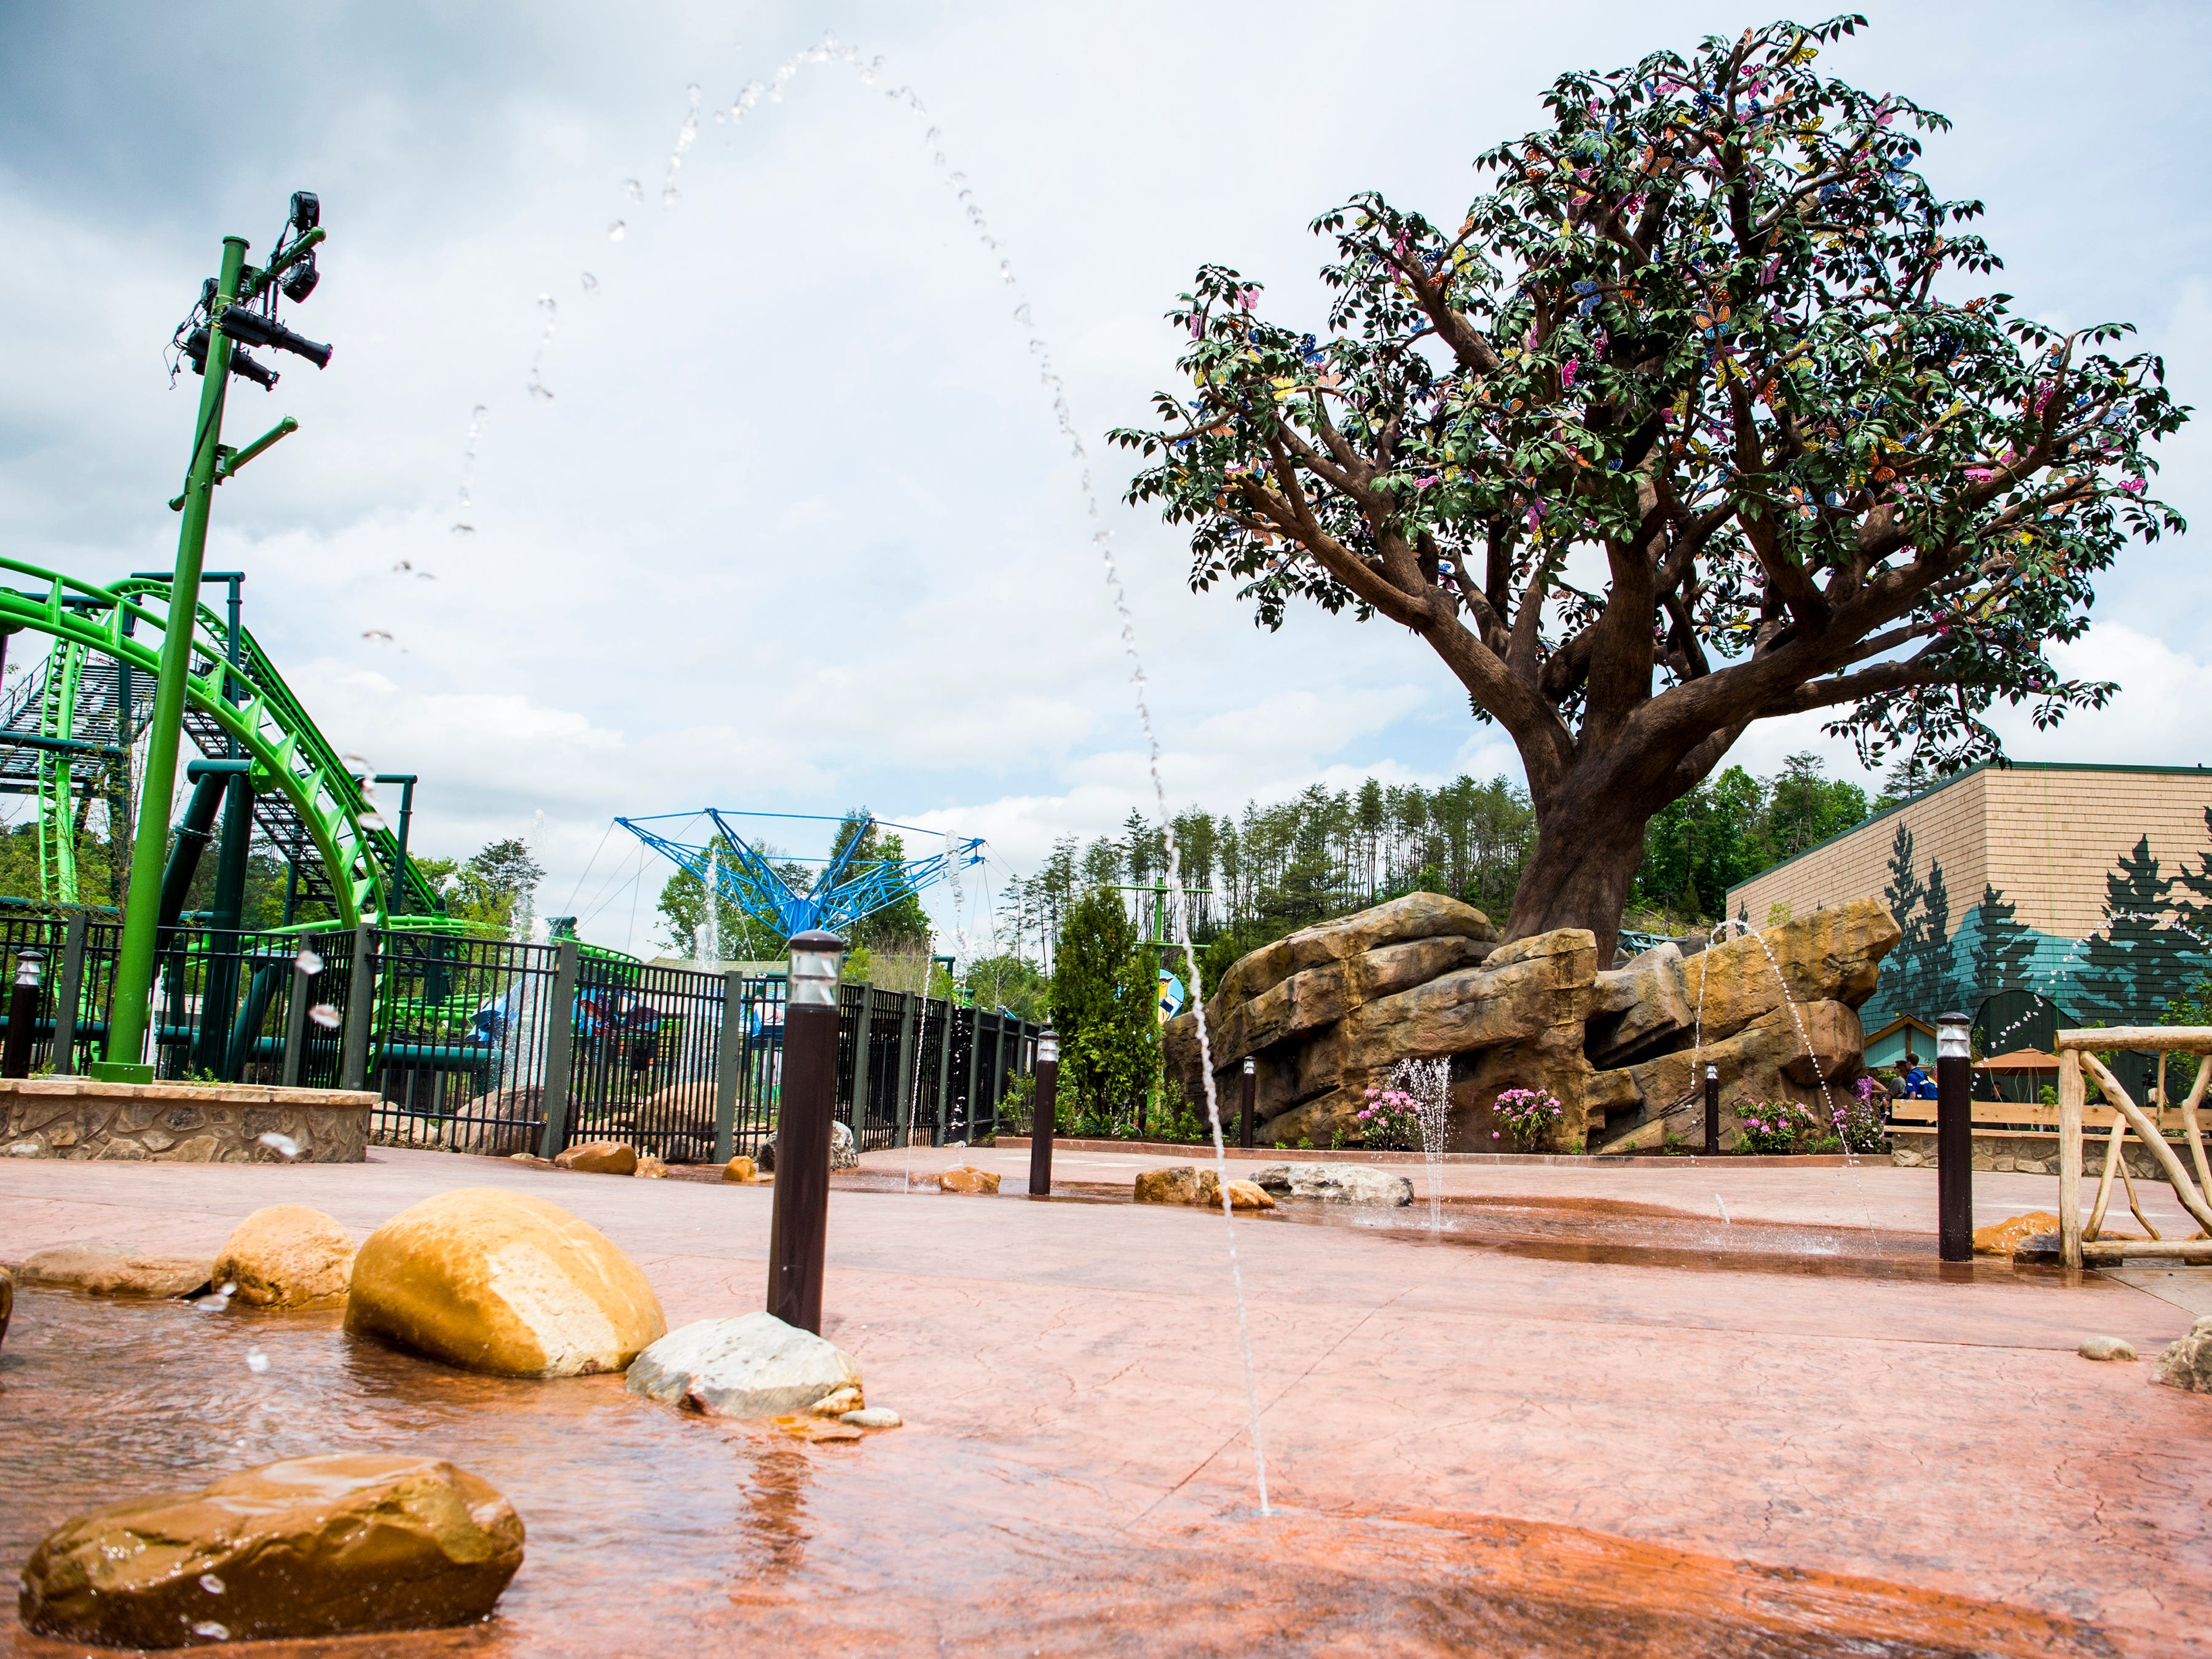 Pop jets and splashing pools make up the Wildwood Creek area in Dollywood's new Wildwood Grove expansion on Friday, May 10, 2019.